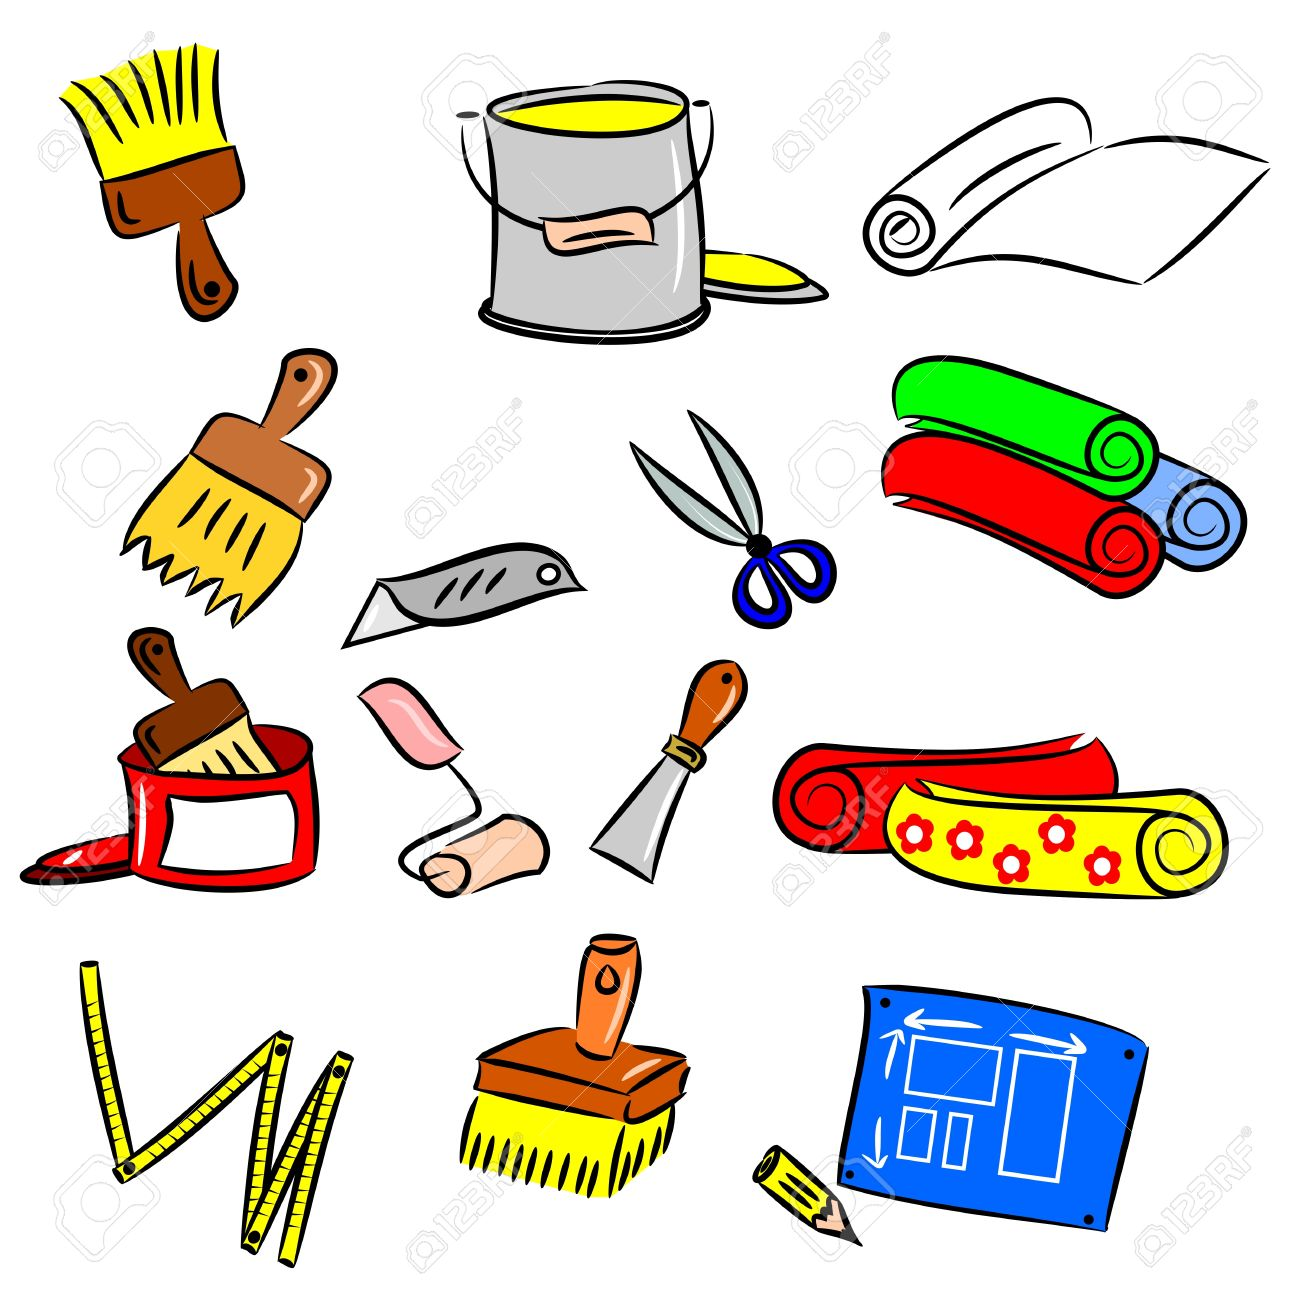 cartoon drawings of DIY tools - Decorate Clipart